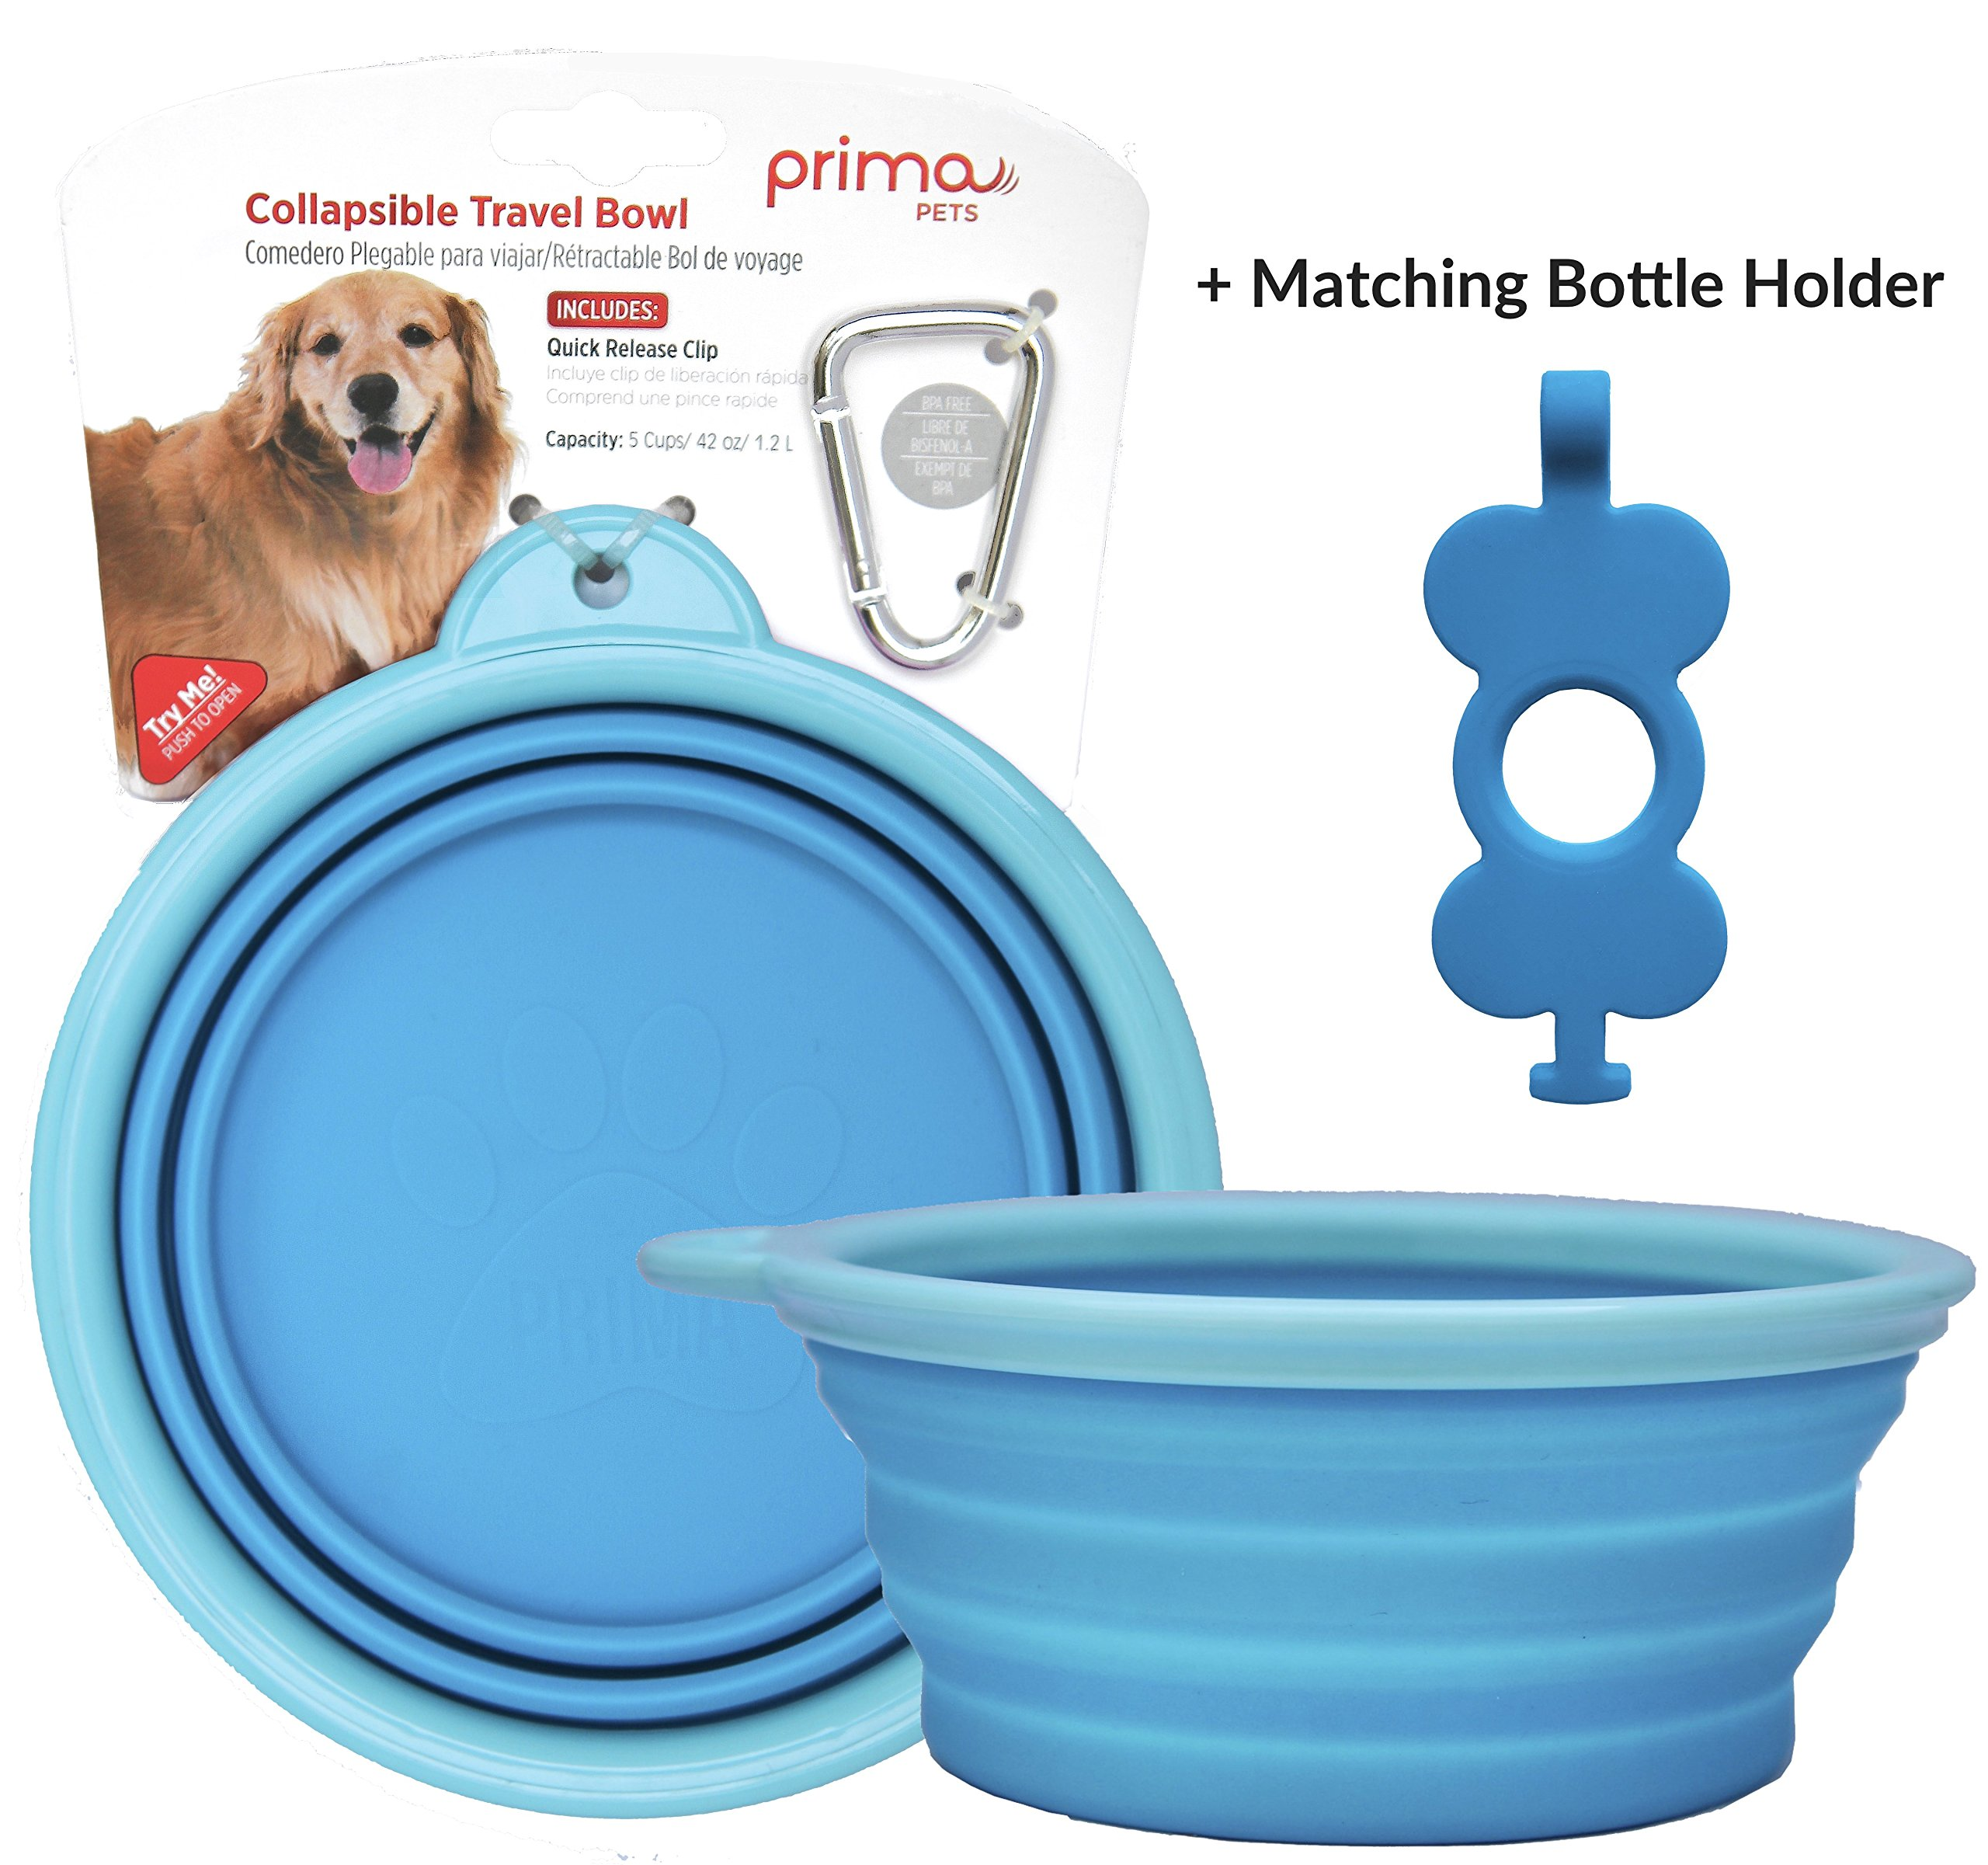 Prima Pet Collapsible Silicone Food & Water Travel Bowl with Clip for Dog and Cat (LARGE (5 CUPS) + BOTTLE HOLDER, AQUA)